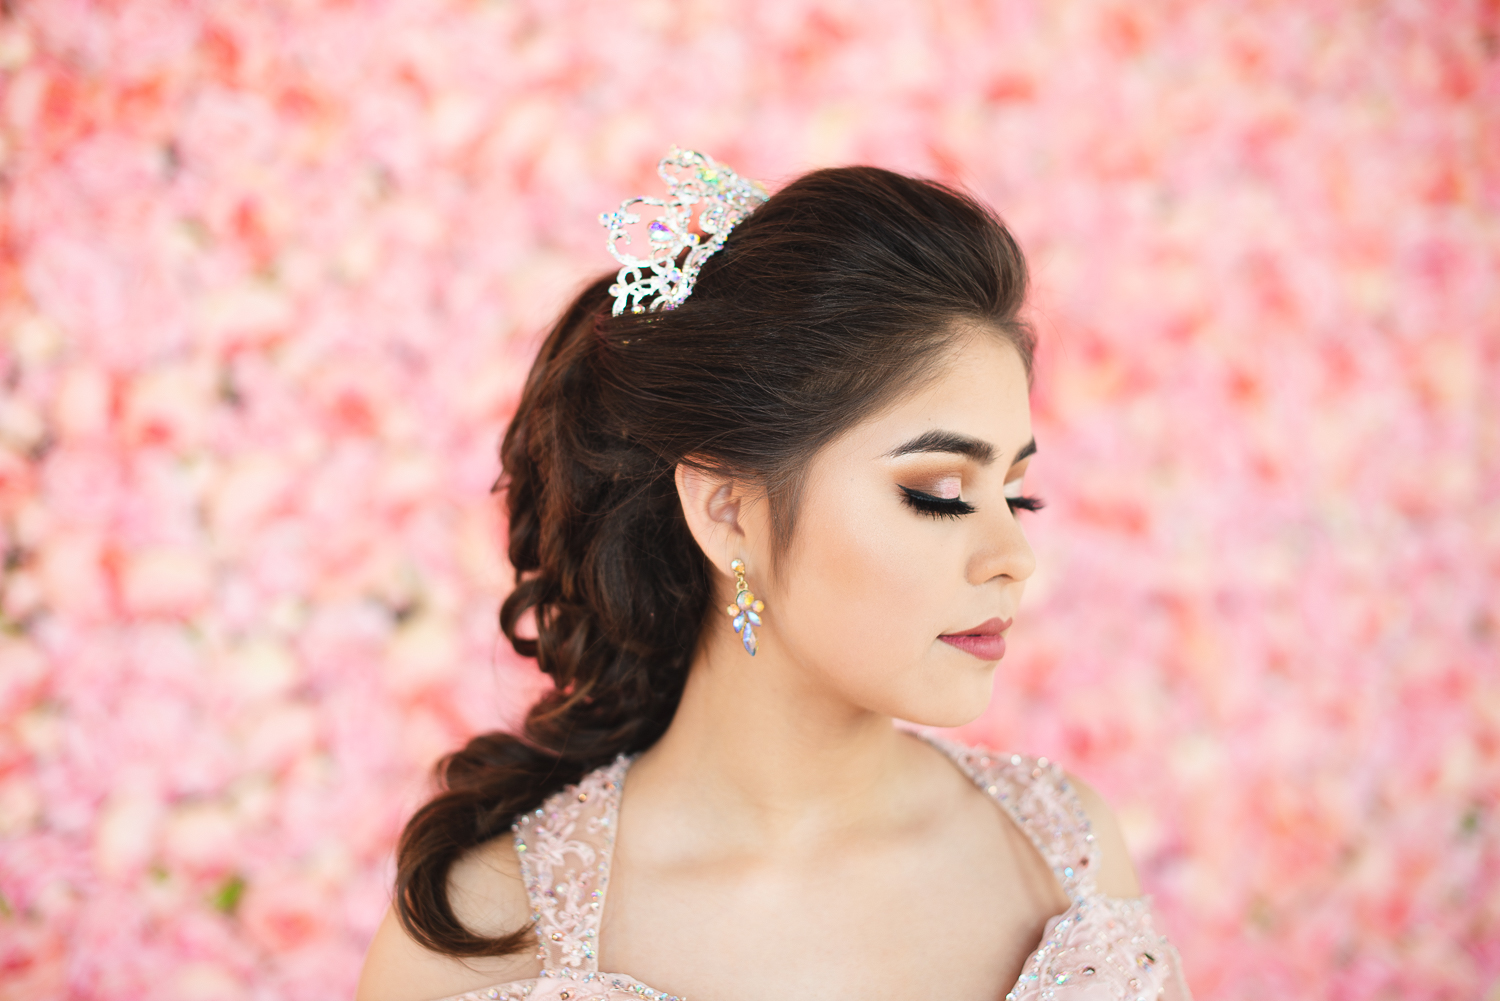 the best houston wedding quince sweet 16 batmitzvah mar mitvah quinceanera best photographer katy texas engagement tomball sugarland brenham pearland pasadena clearlake friendswood river oaks